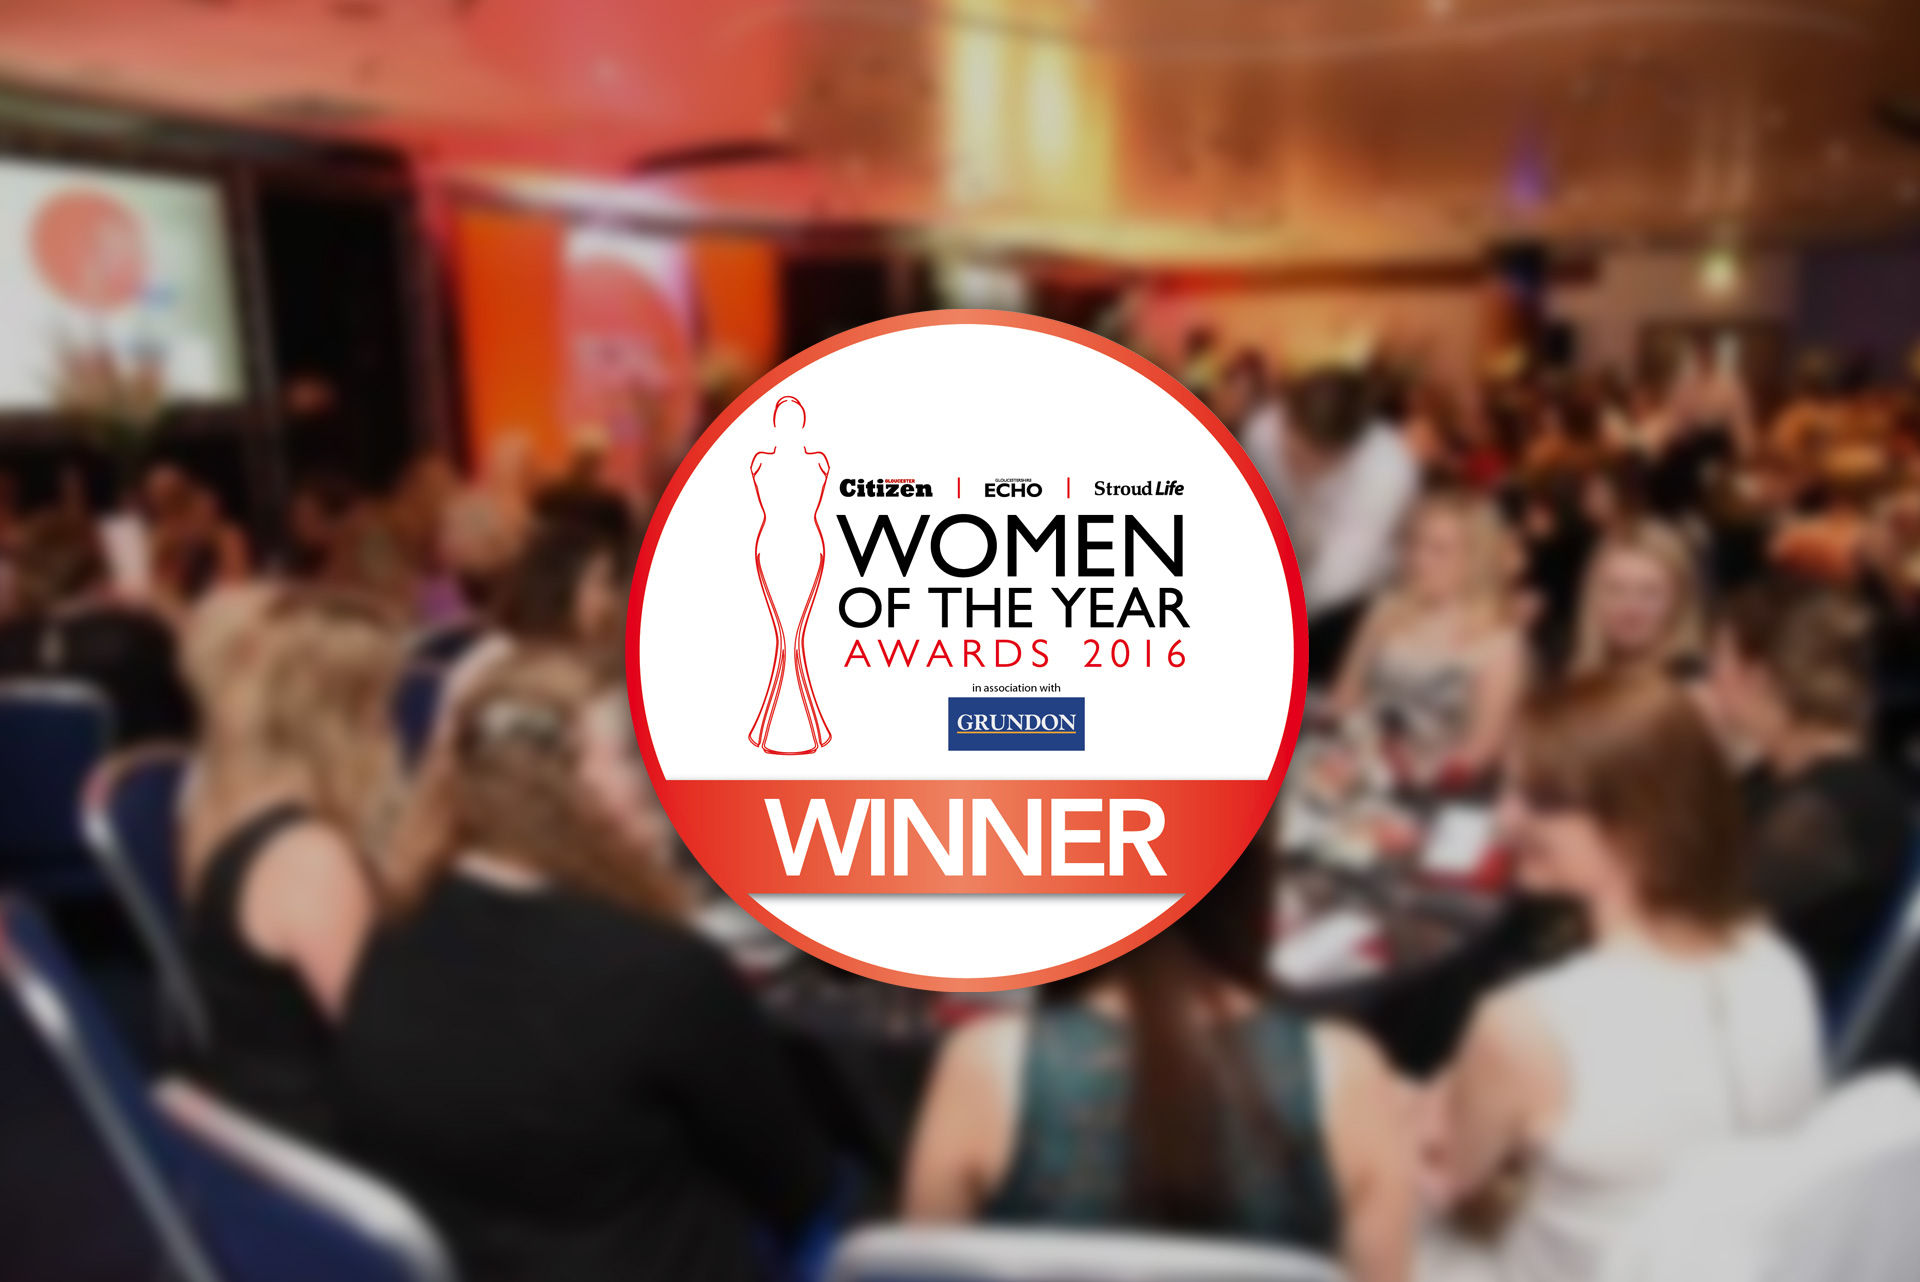 Gloucestershire Women of the Year Awards 2016